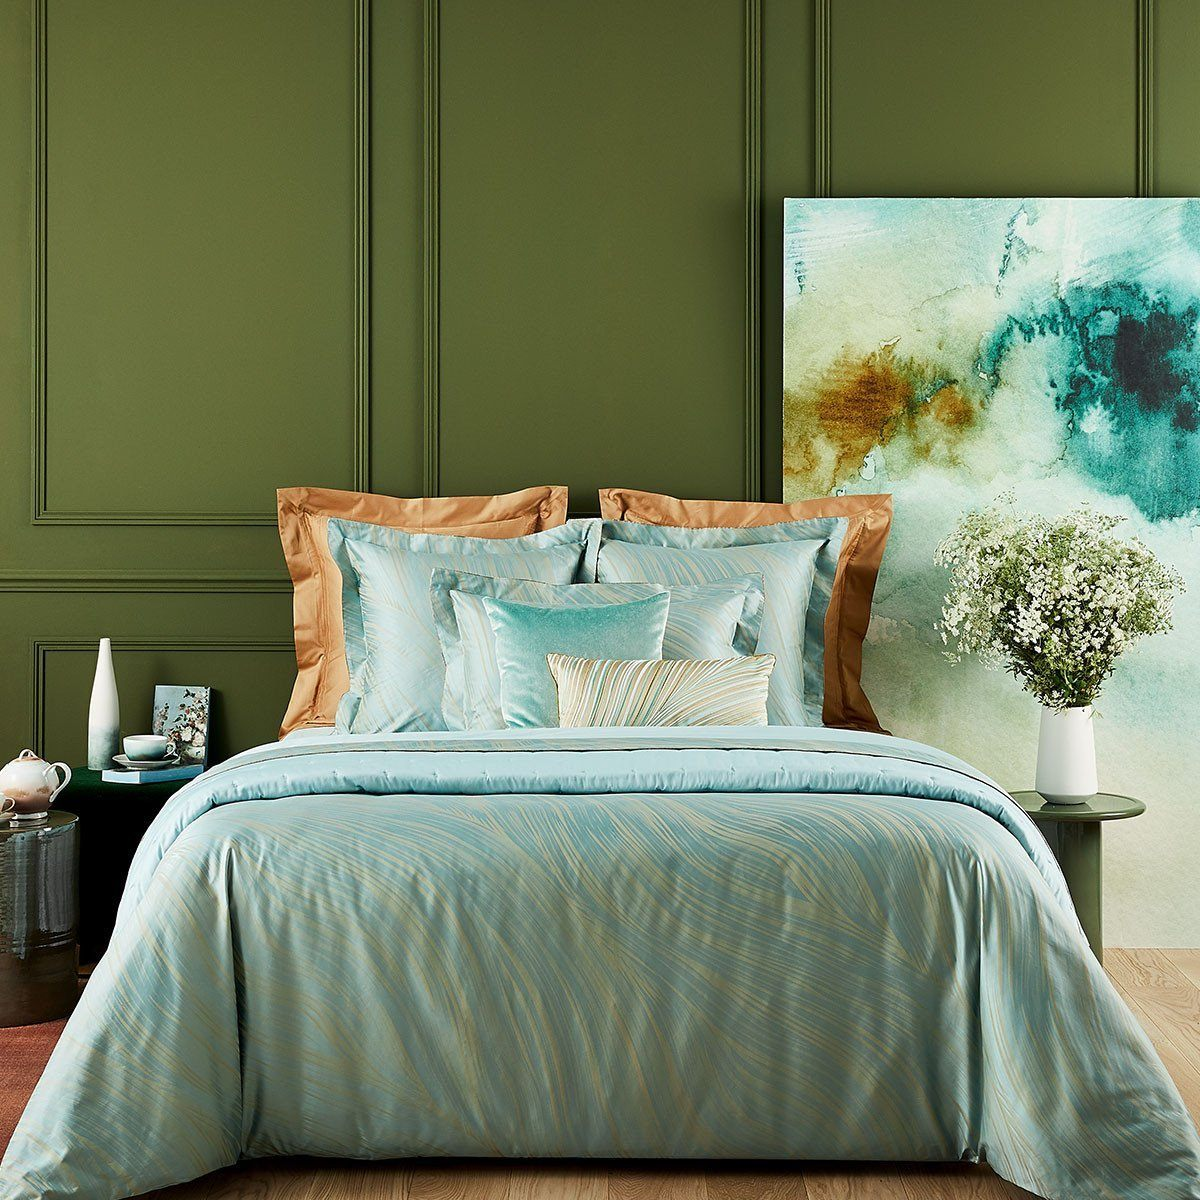 Au Loin Bedding by Yves Delorme